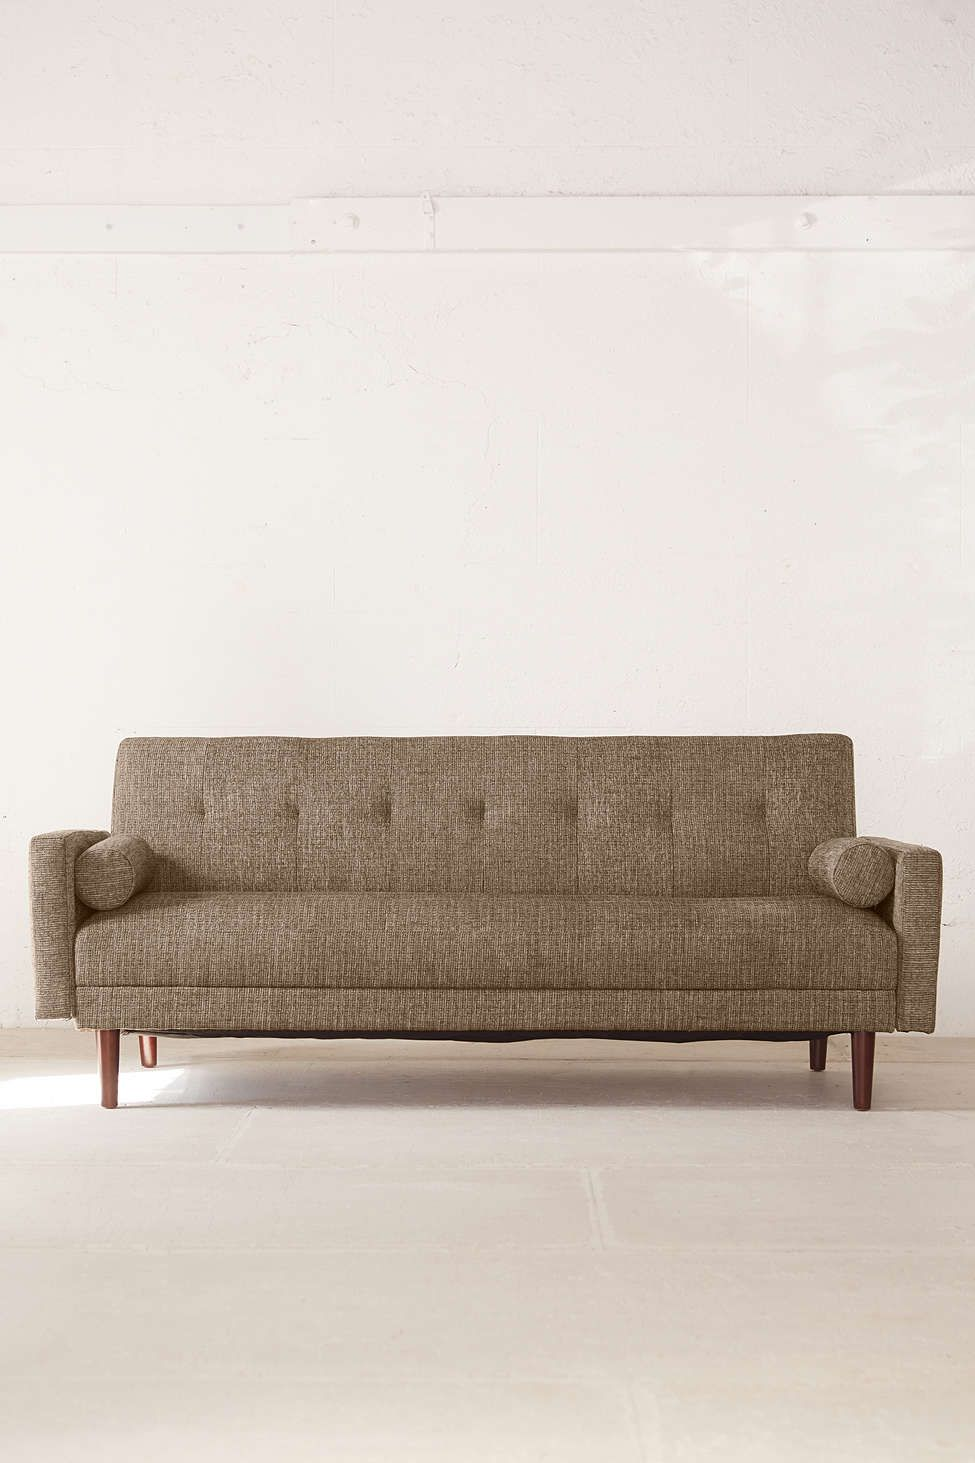 couch slide h fit sleeper view sofa qlt urban xl greta outfitters xlarge hei constrain leather shop recycled